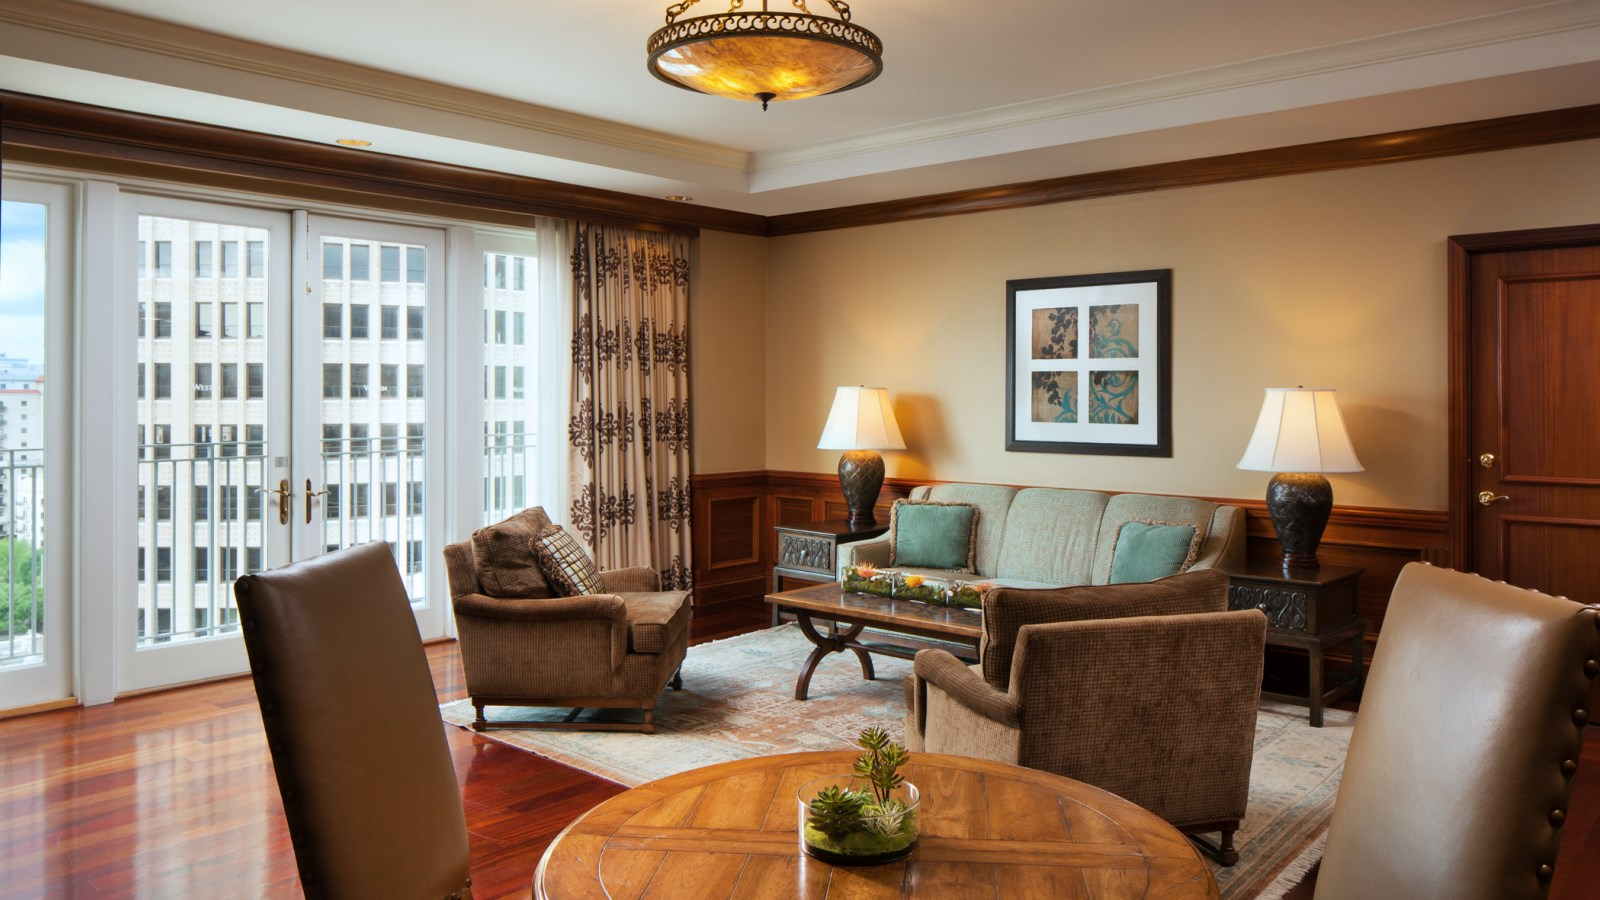 San Antonio Accommodations - The Westin Riverwalk San Antonio Hotel